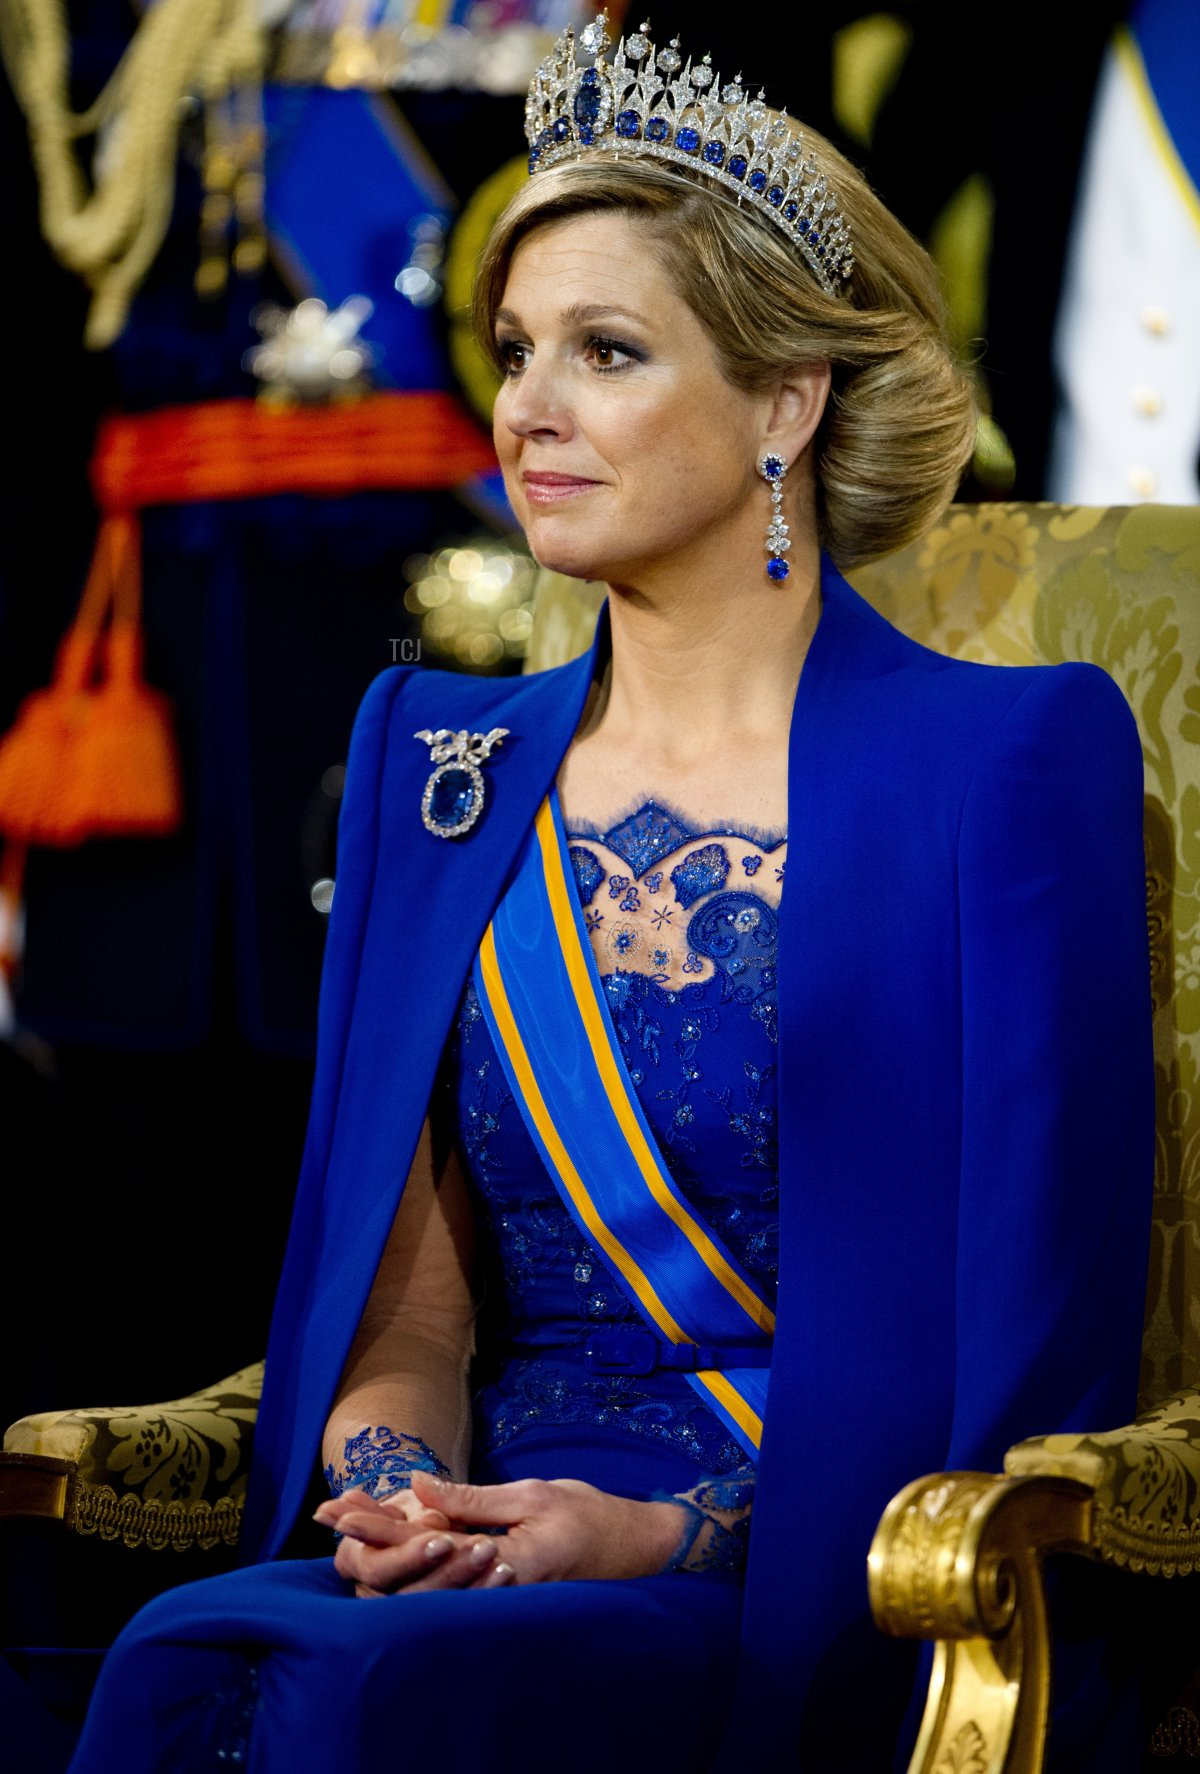 Queen Maxima of the Netherlands attends the inauguration of her husband King Willem-Alexander of the Netherlands at the Nieuwe Kerk (New Church) in Amsterdam, on April 30, 2013